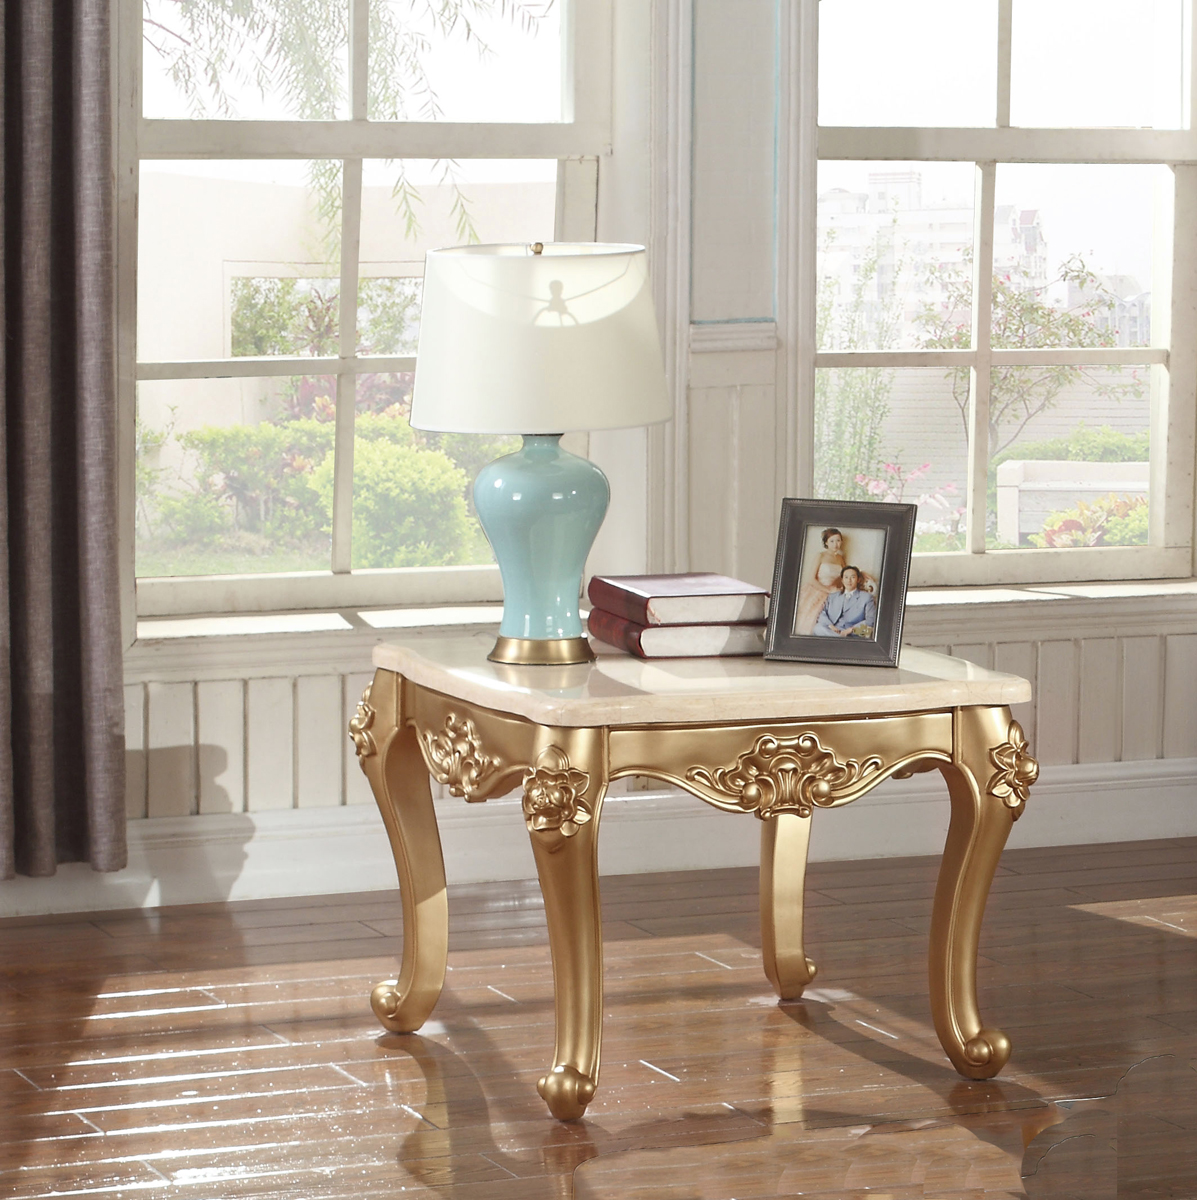 Ashley Furniture Meridian Idaho: Meridian Meridian Bennito End Table In Gold 276-E